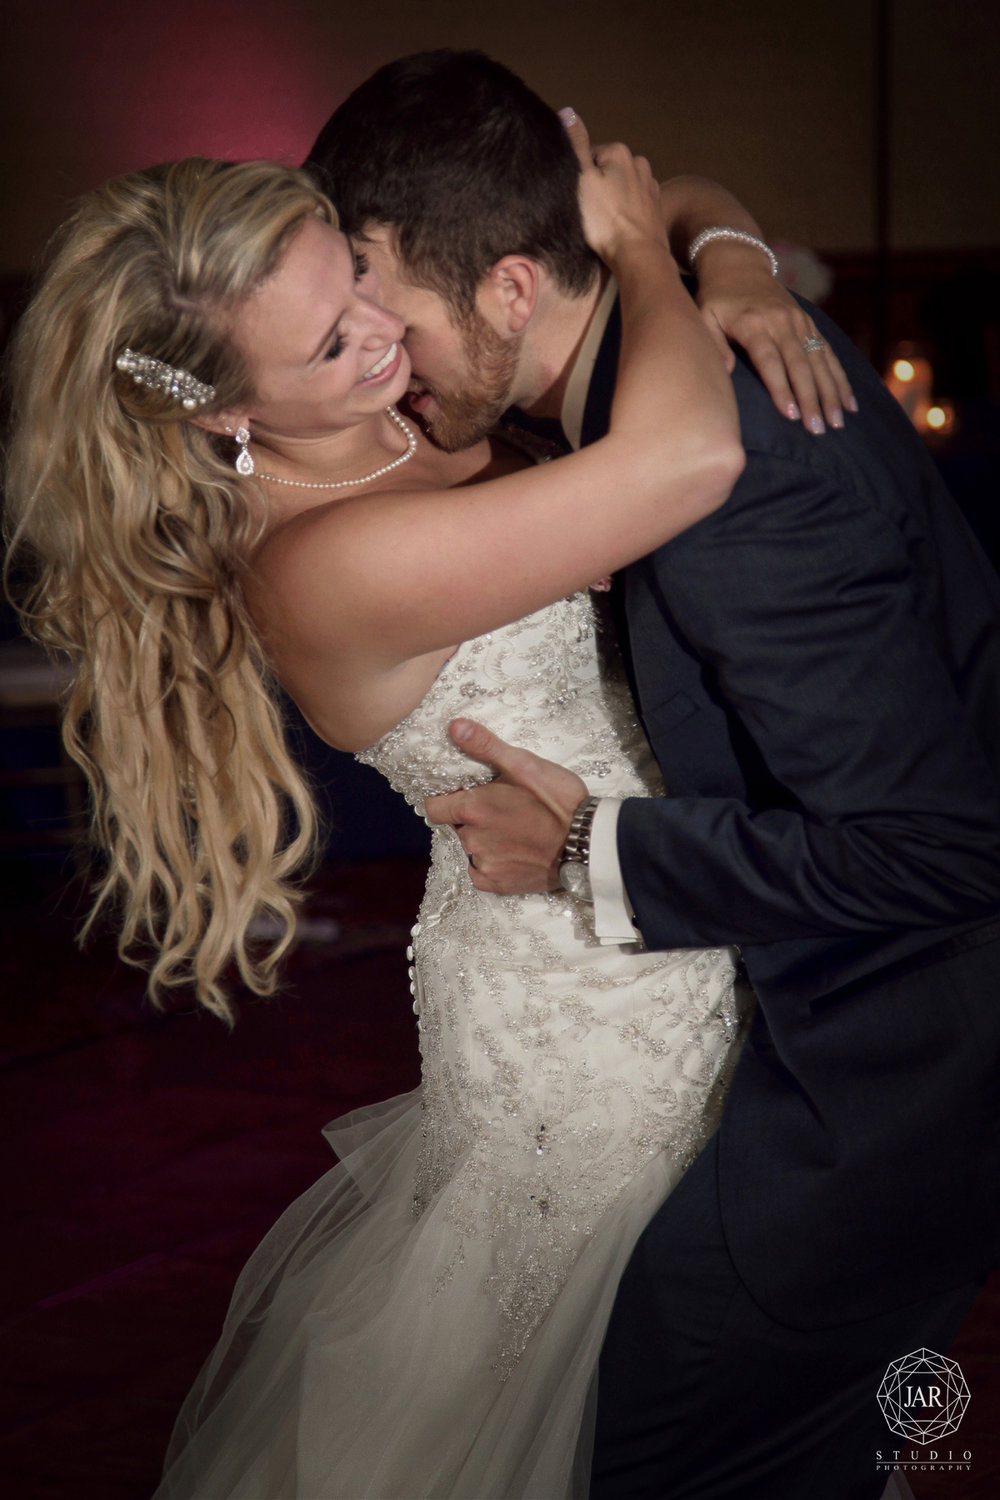 19-first-dance-the-ballroom-at-church-street-jarstudio-photography.jpg